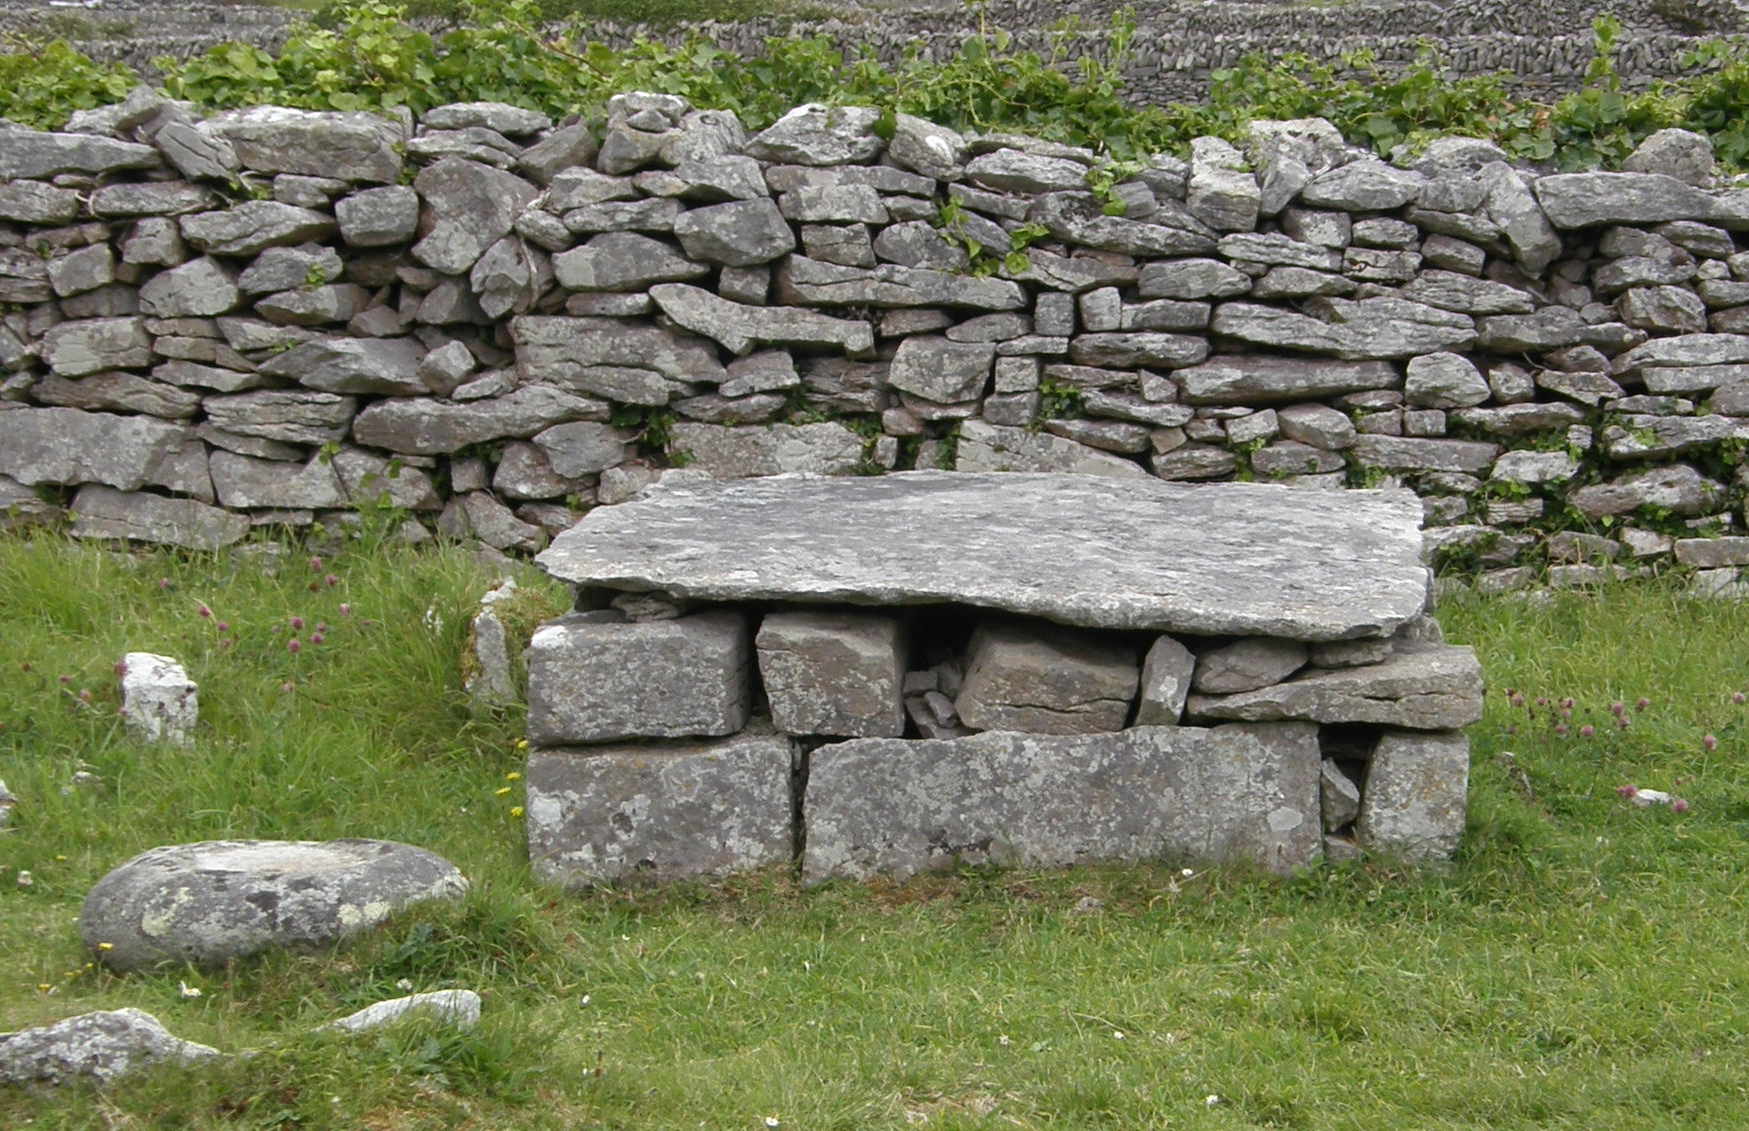 Stone altar outside St. Gobnait's Church and Bullaun Stone